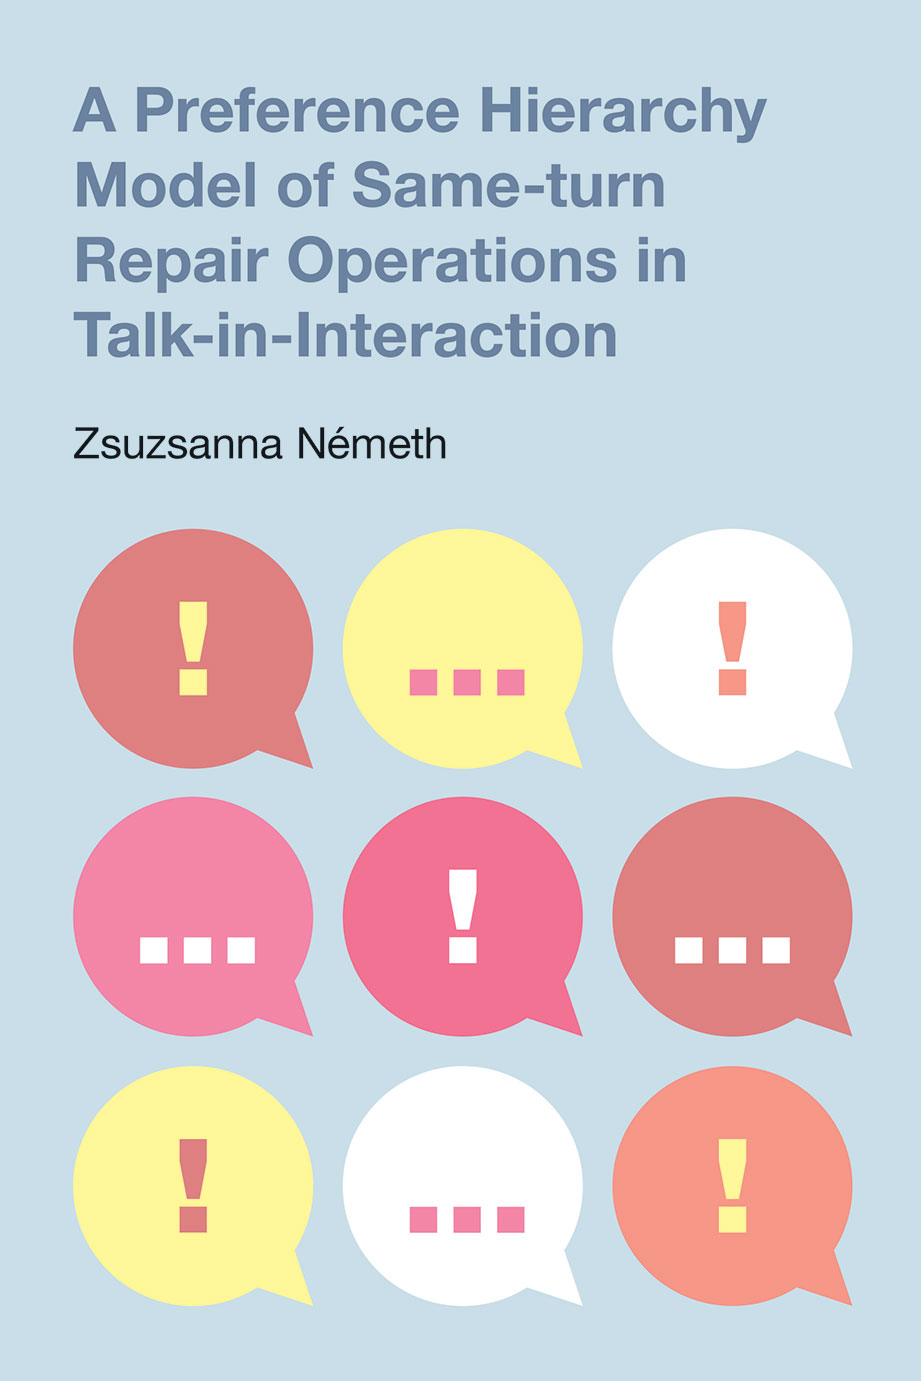 A Preference Hierarchy Model of Same-Turn Repair Operations in Talk-in-Interaction